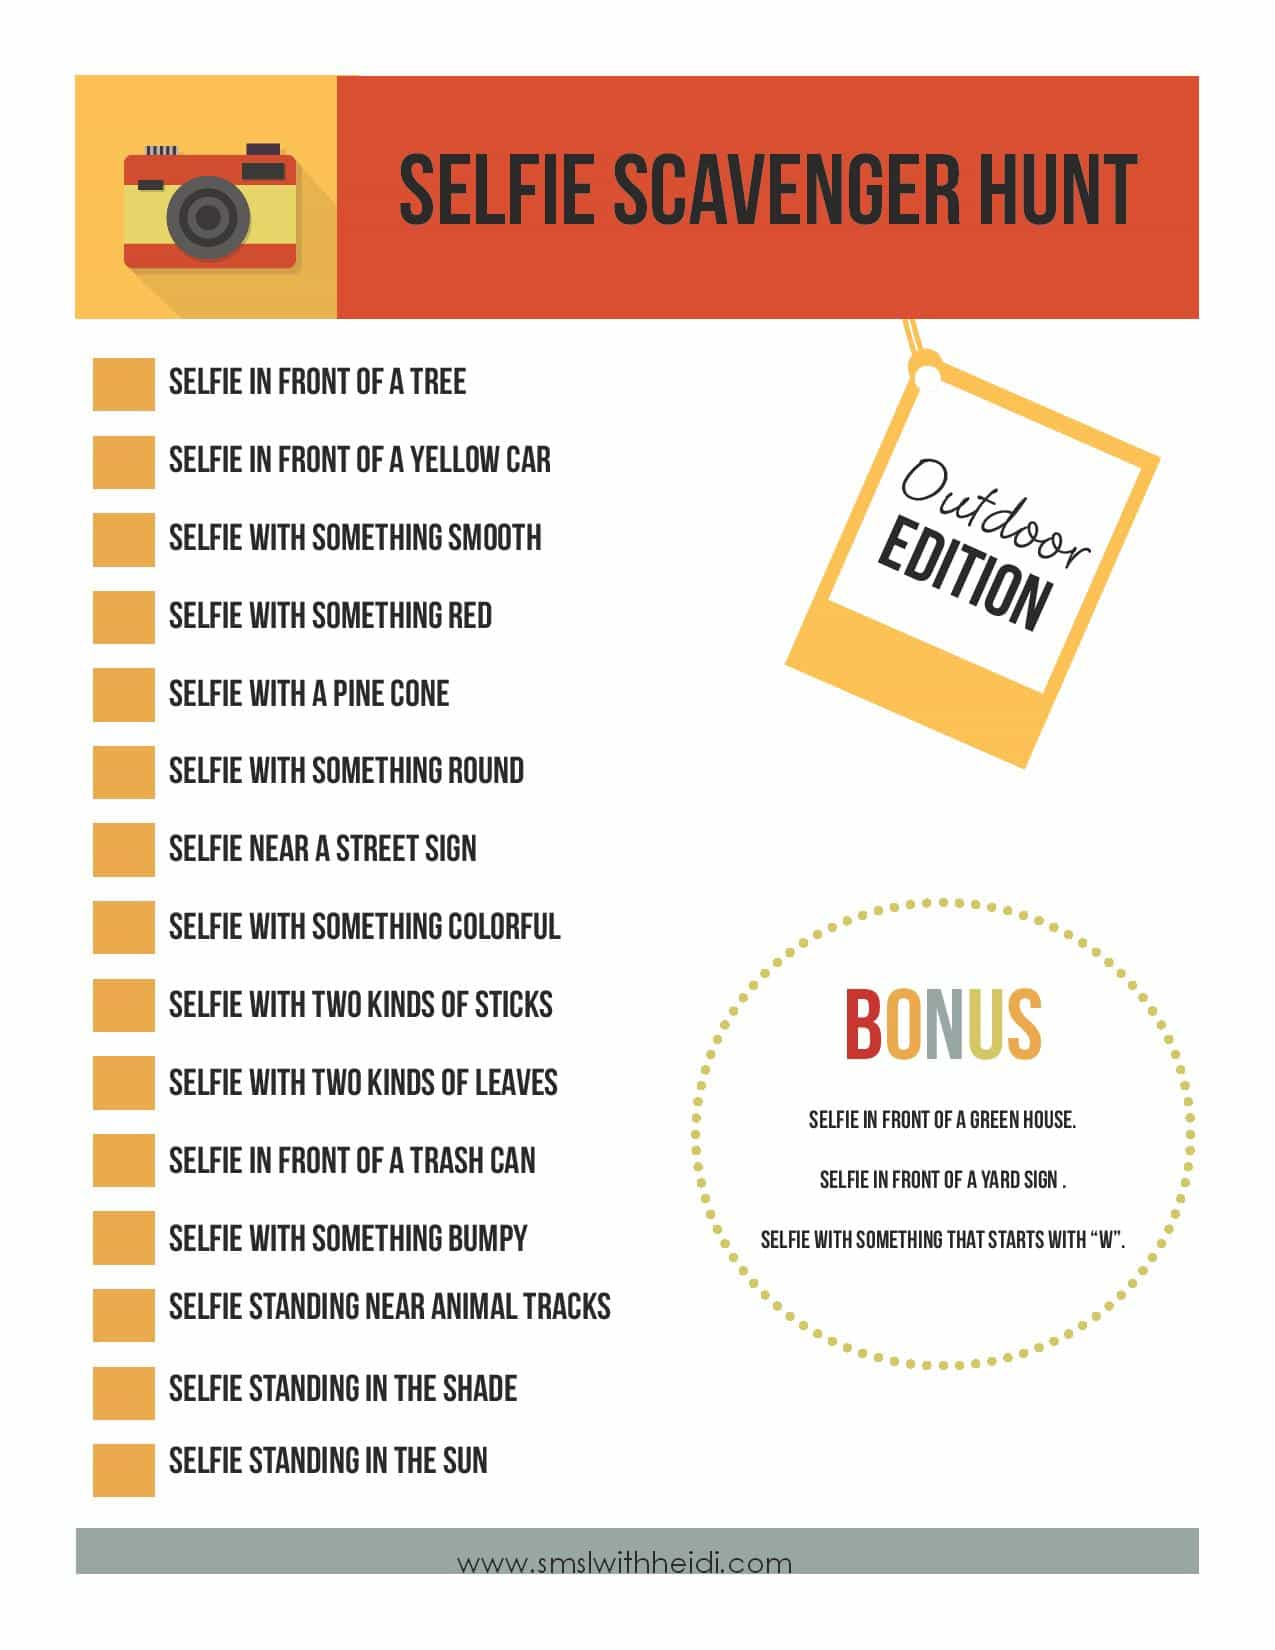 Selfie Scavenger Hunt - Life with Heidi